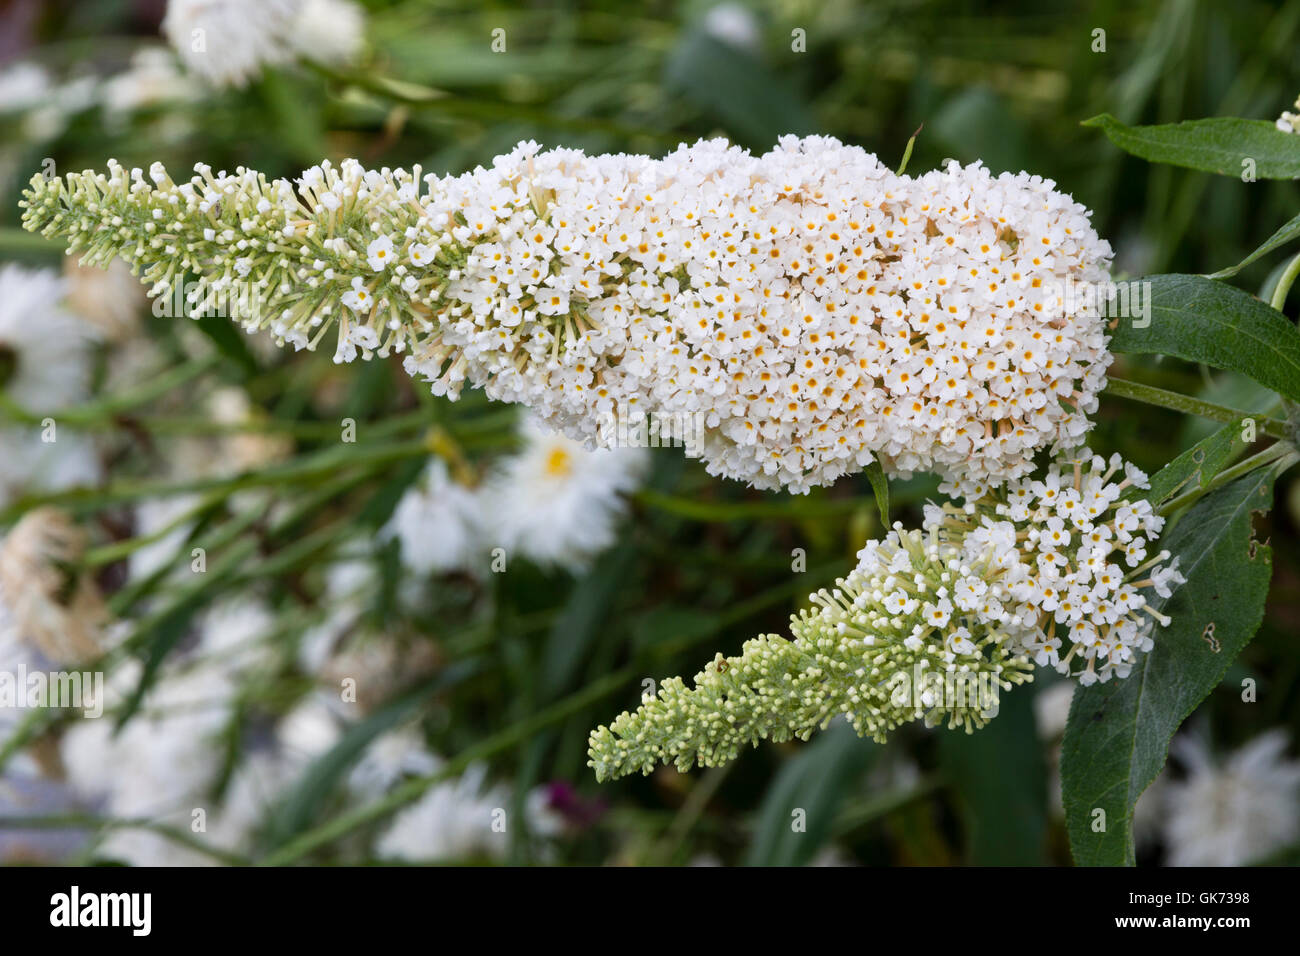 Scented white flowers of the compact butterfly bush, Buddleja davidii 'Buzz Ivory' - Stock Image